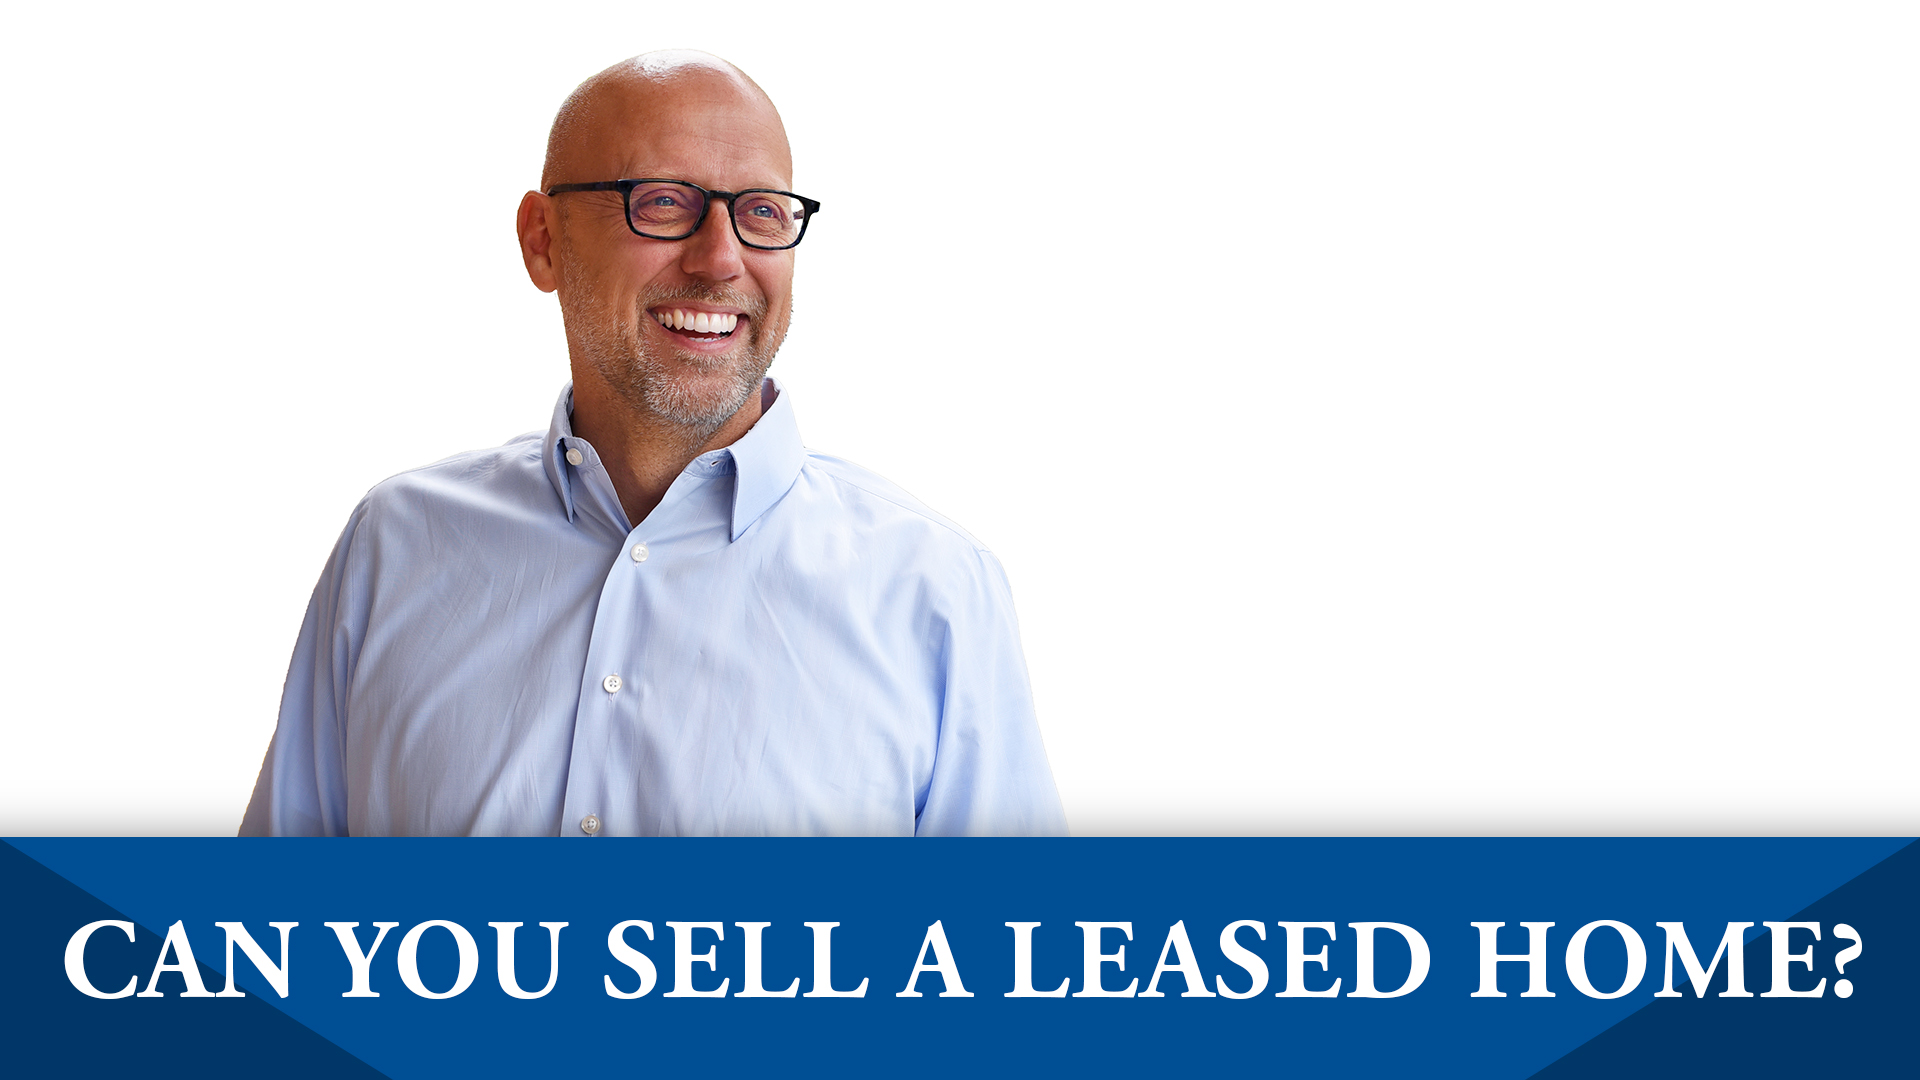 Can I Sell My Home While It's Leased?